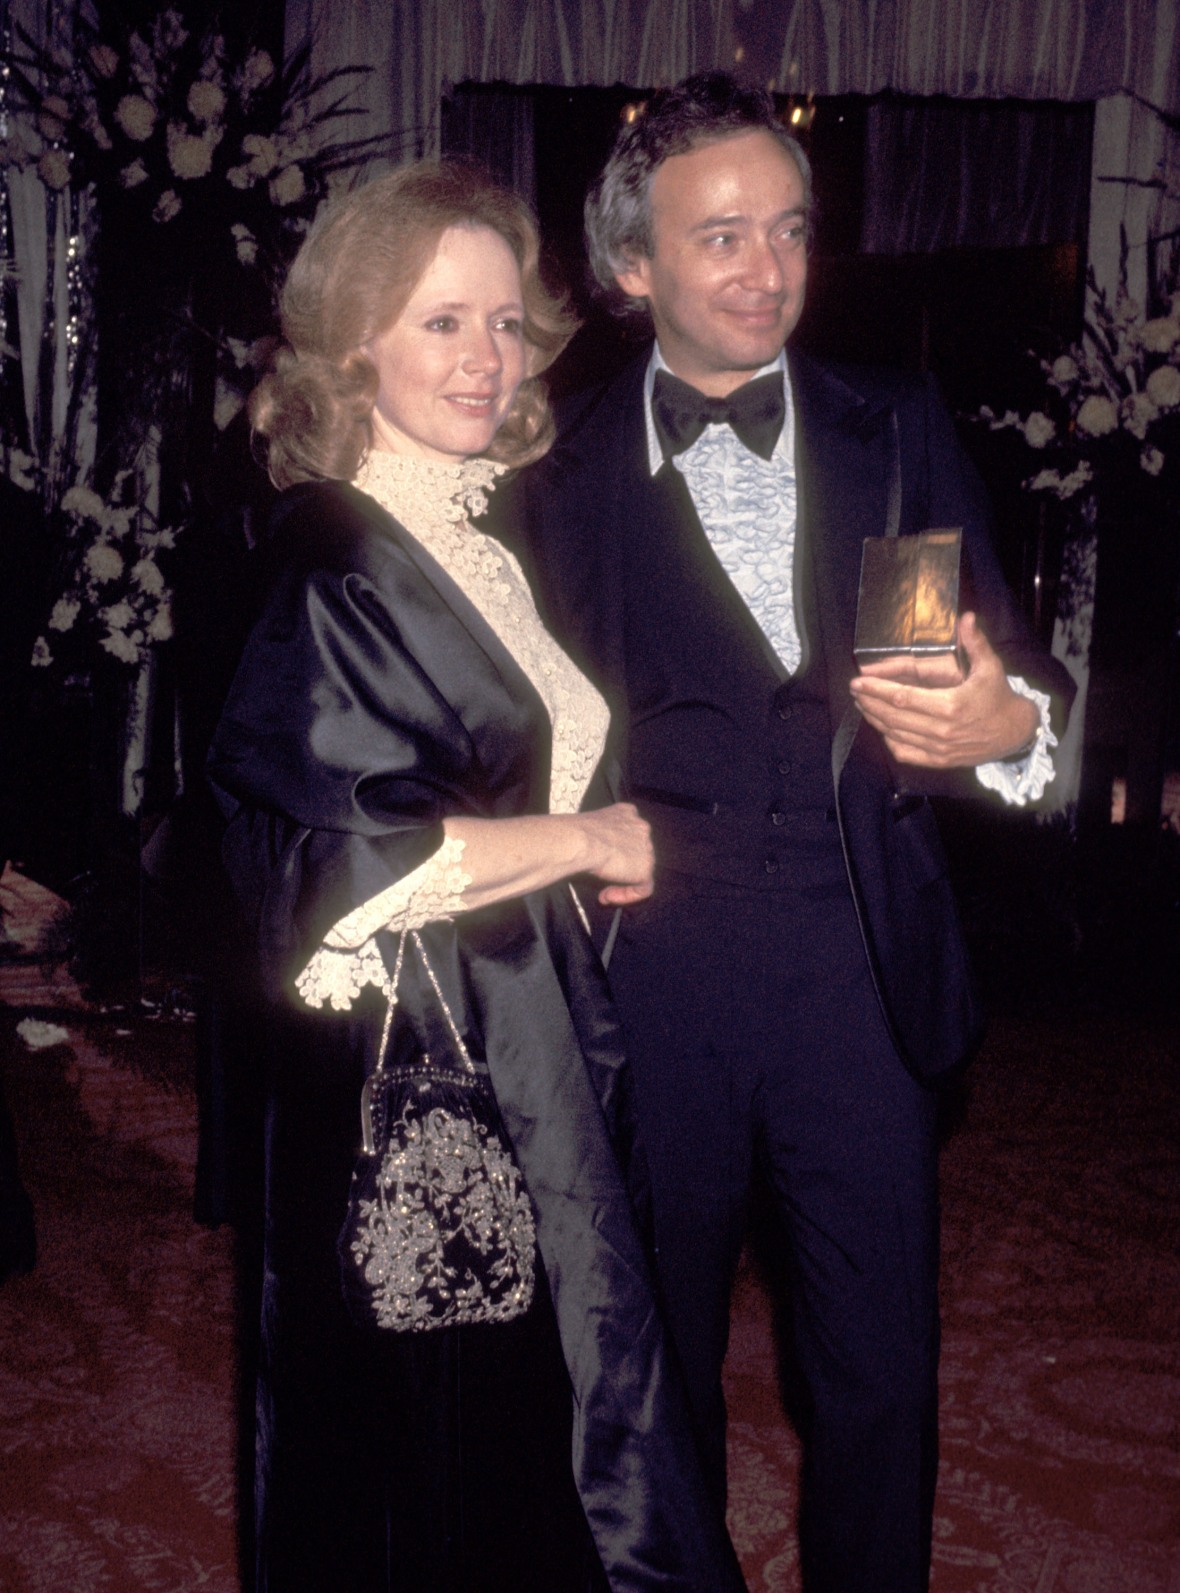 piper and joe. (photo credit: getty images)